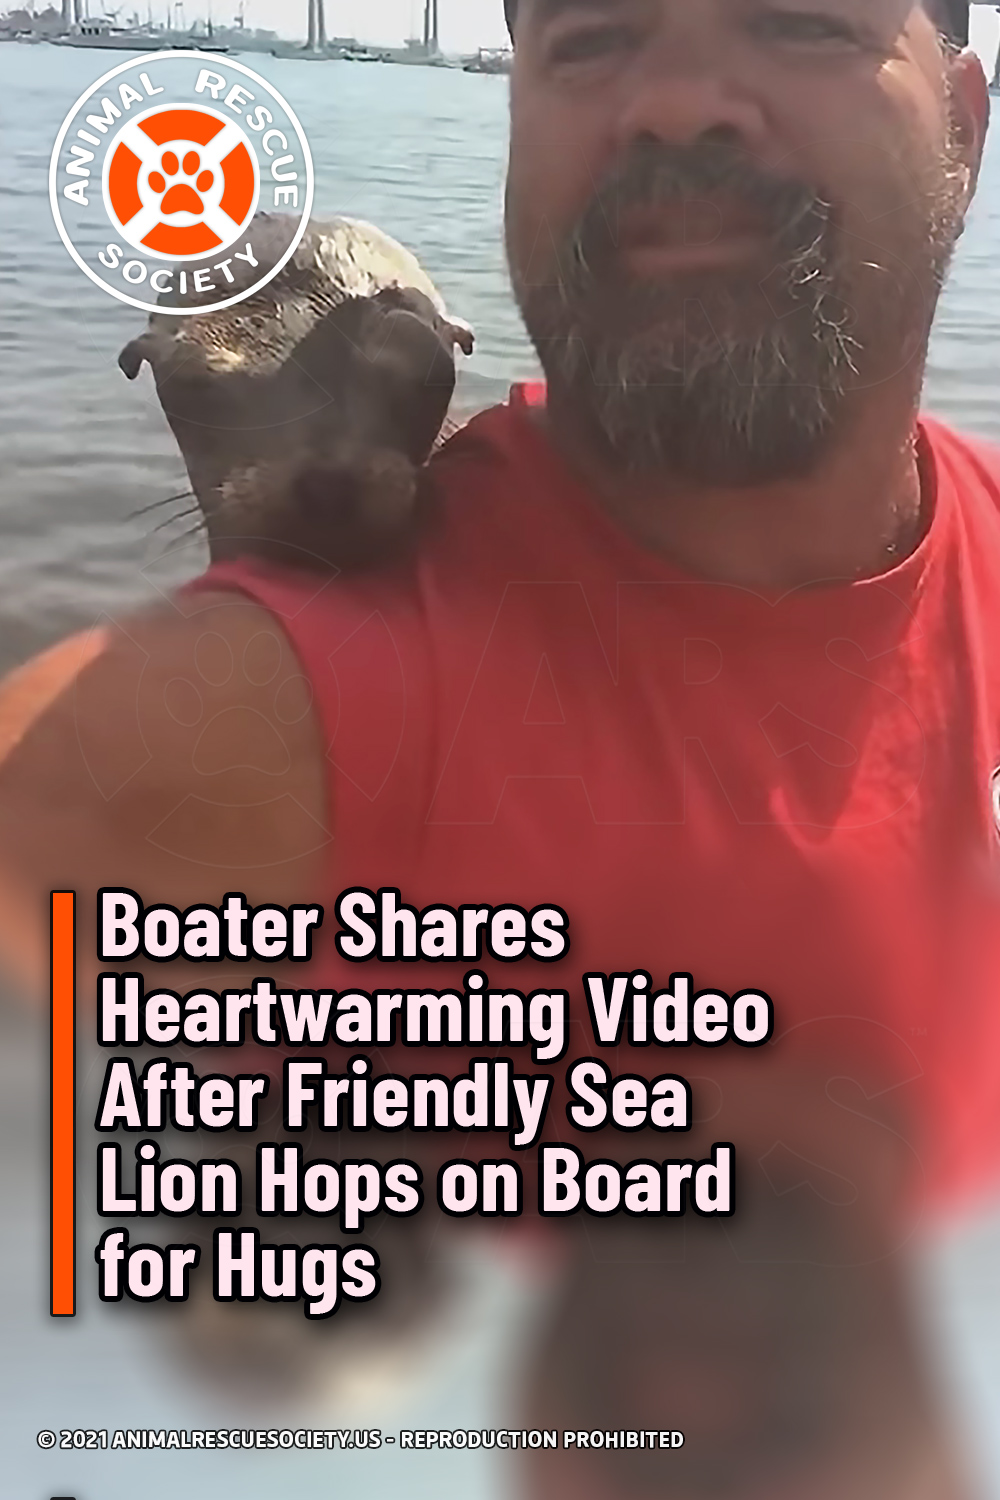 Boater Shares Heartwarming Video After Friendly Sea Lion Hops on Board for Hugs